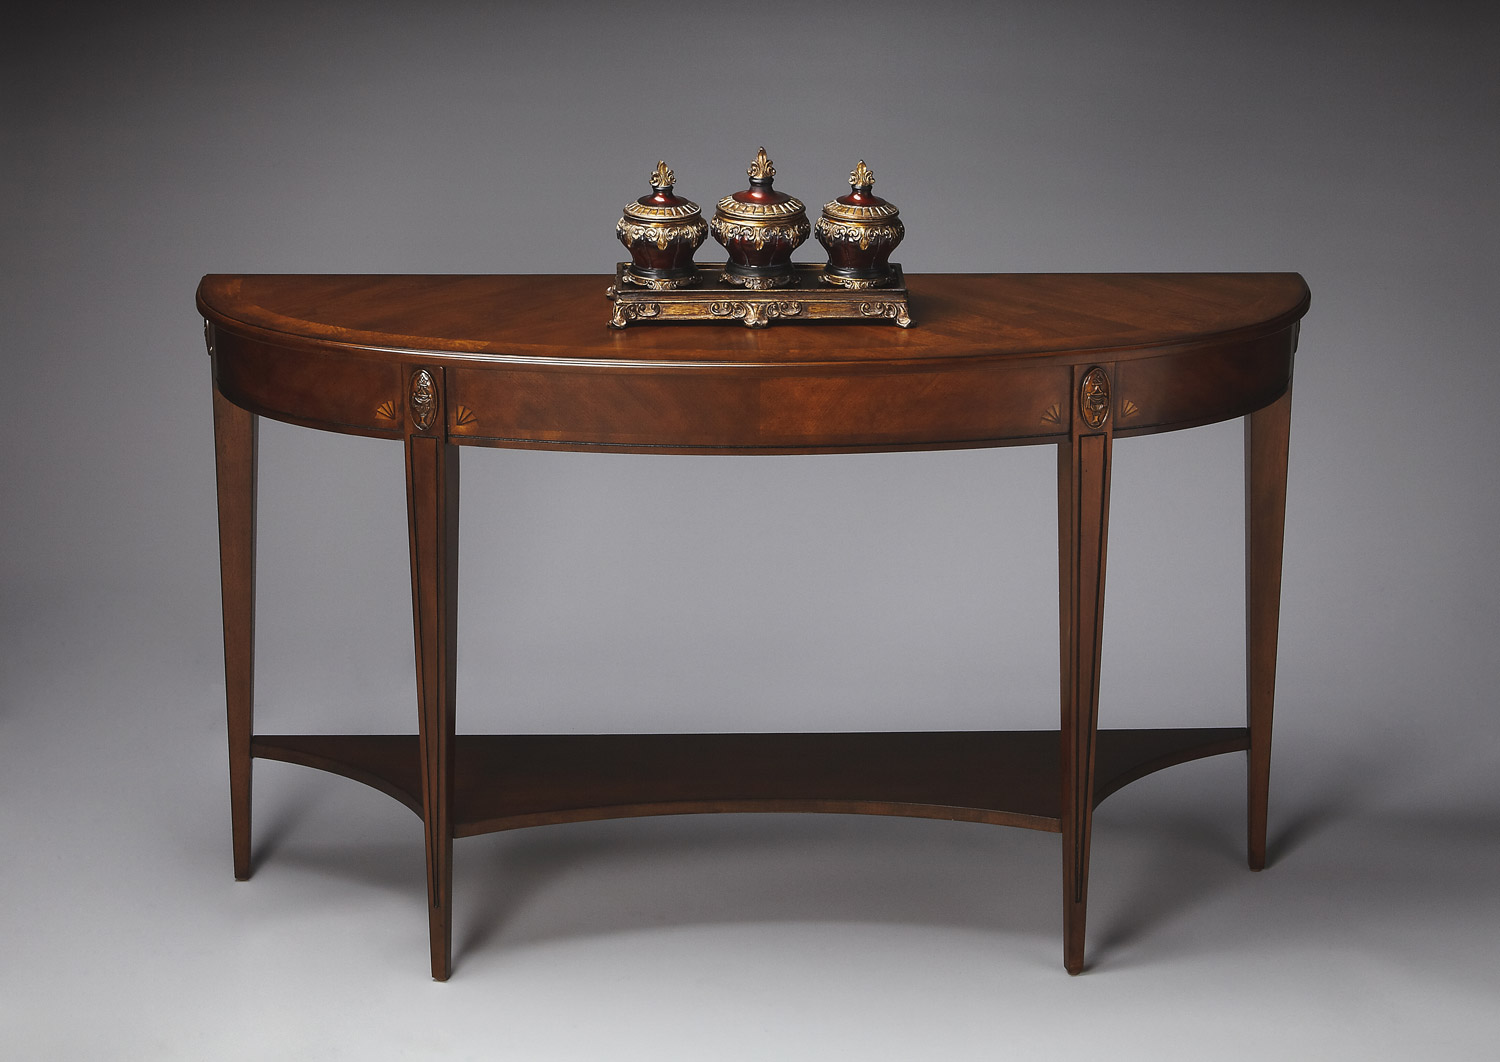 Butler 4146251 antique cherry demilune console table bt 4146251 at butler 4146251 antique cherry demilune console table geotapseo Gallery